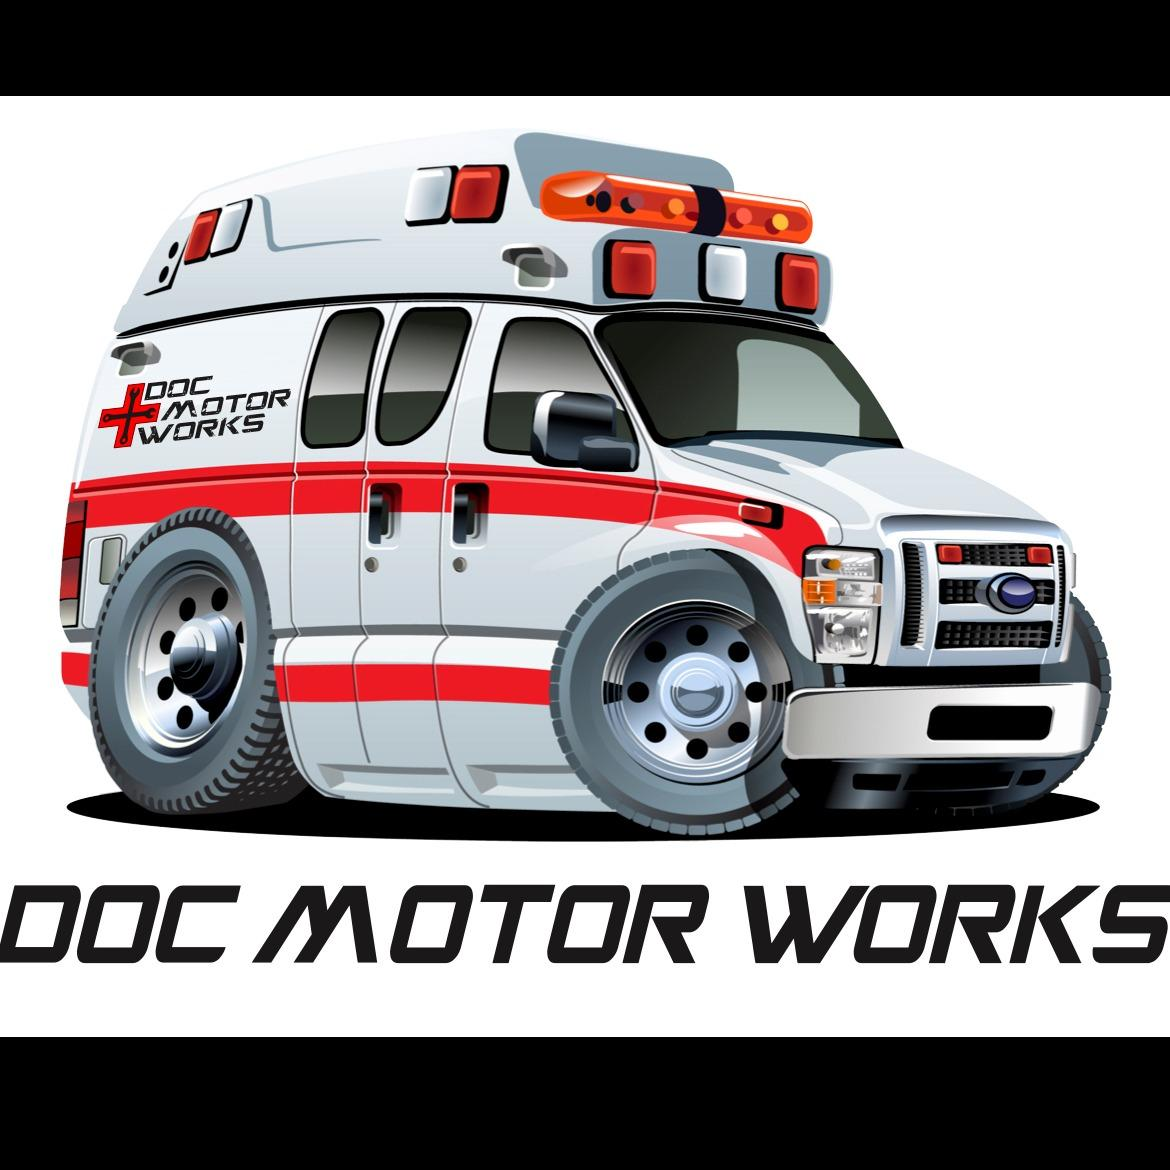 doc motor works auto repair coupons near me in shorewood